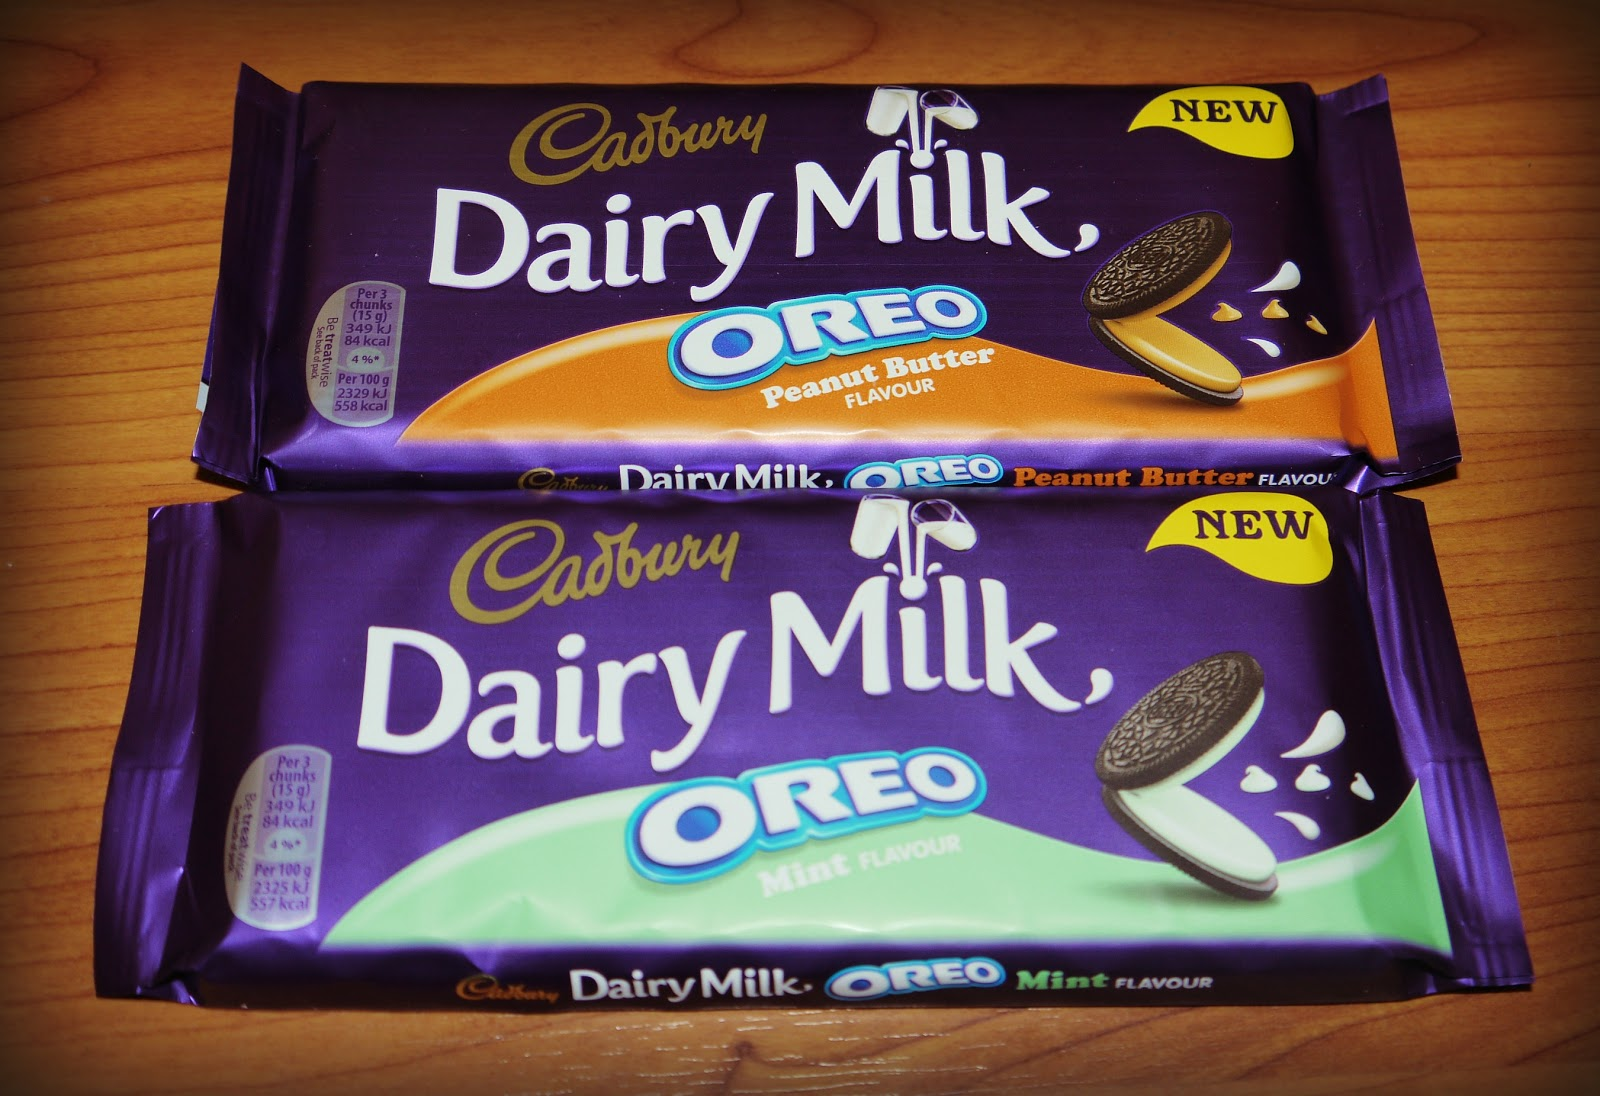 marketing plan for cadbury dairy milk Cadbury product: cadbury's dairy milk create a fresh creative approach and an integrated marketing communications plan to re what do cadbury dairy milk.